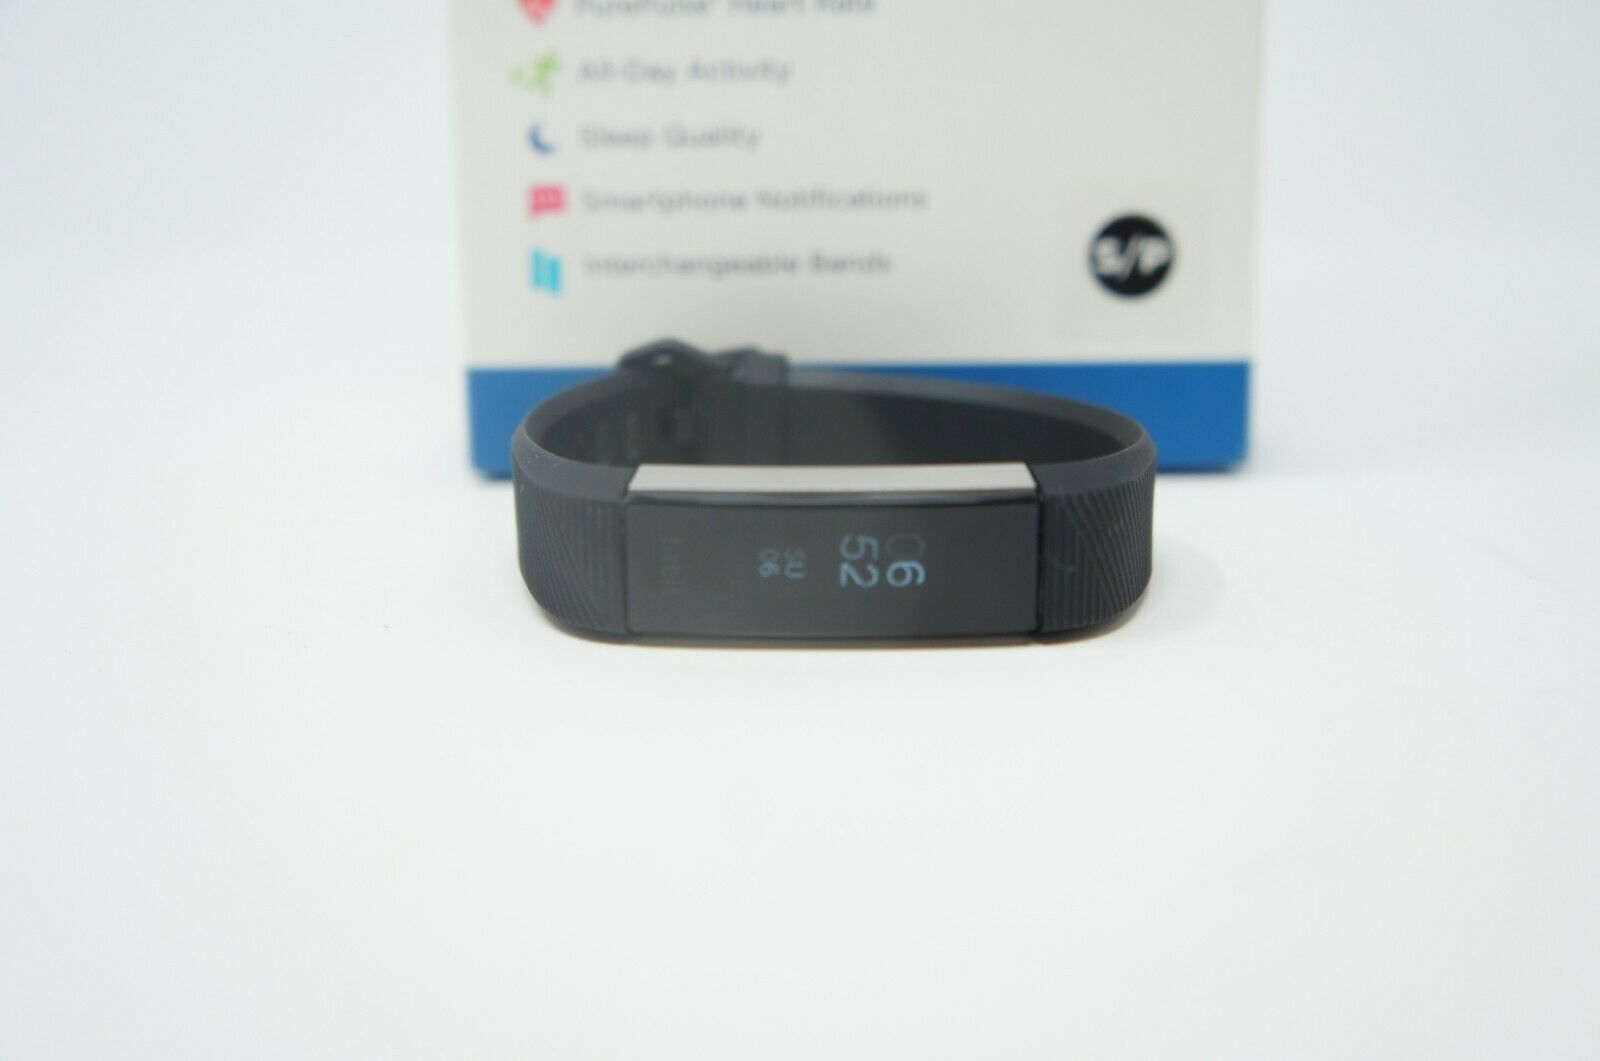 Fitbit Alta HR Heart Rate Fitness Wristband Tracker SMALL BLACK/SLIVER (Like New)